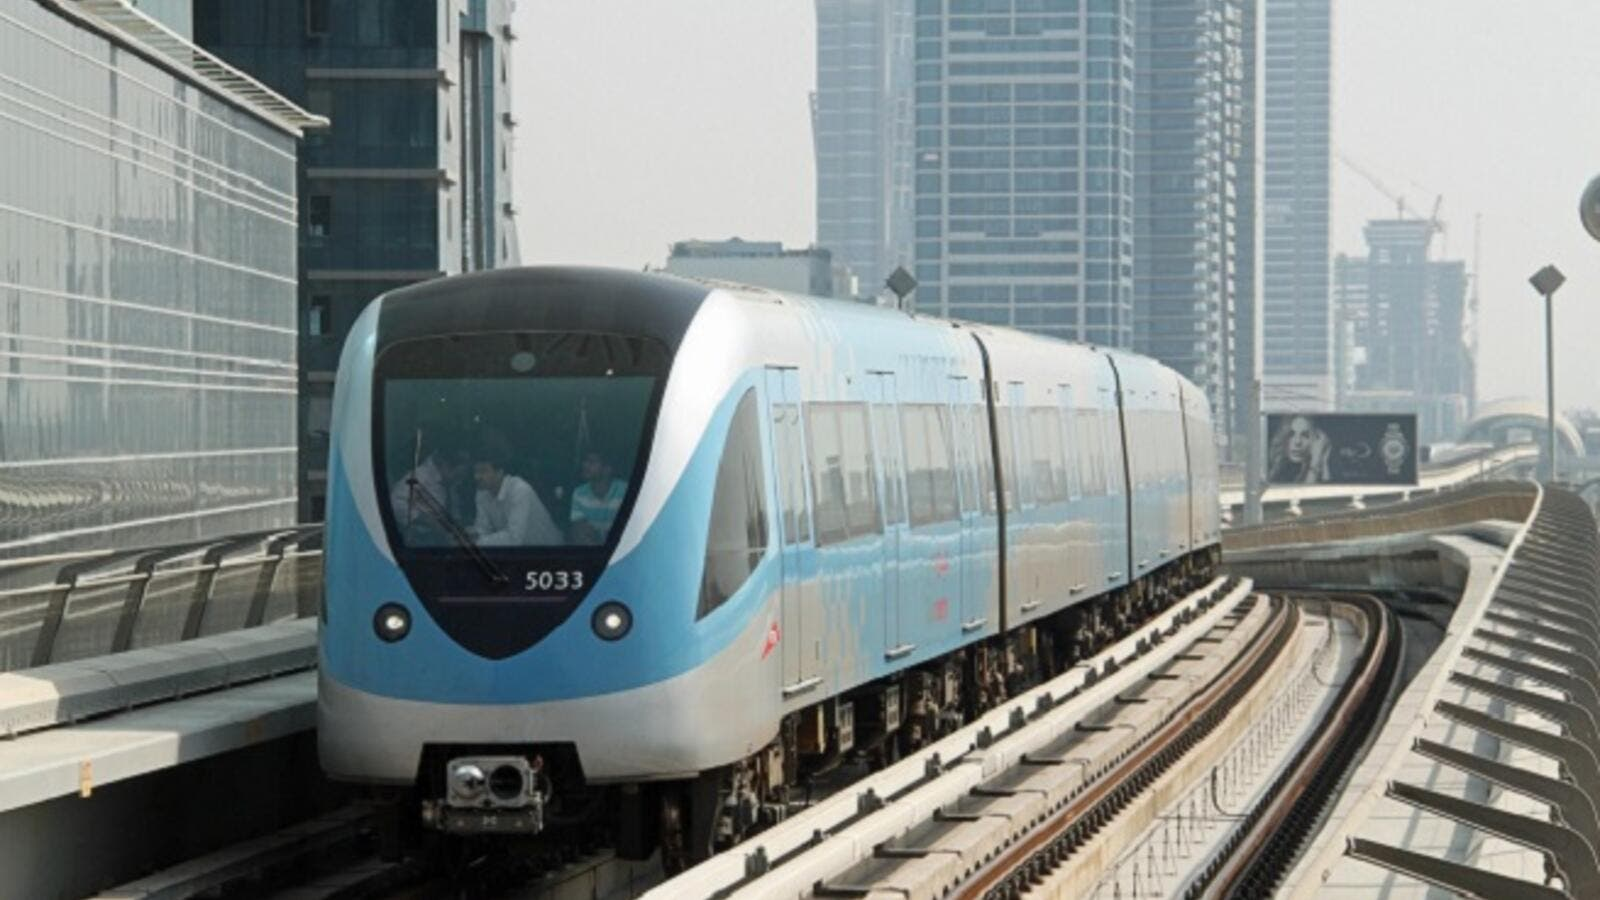 Public transportation in the UAE under the Executive Regulations Article 45 are exempt. (File photo)